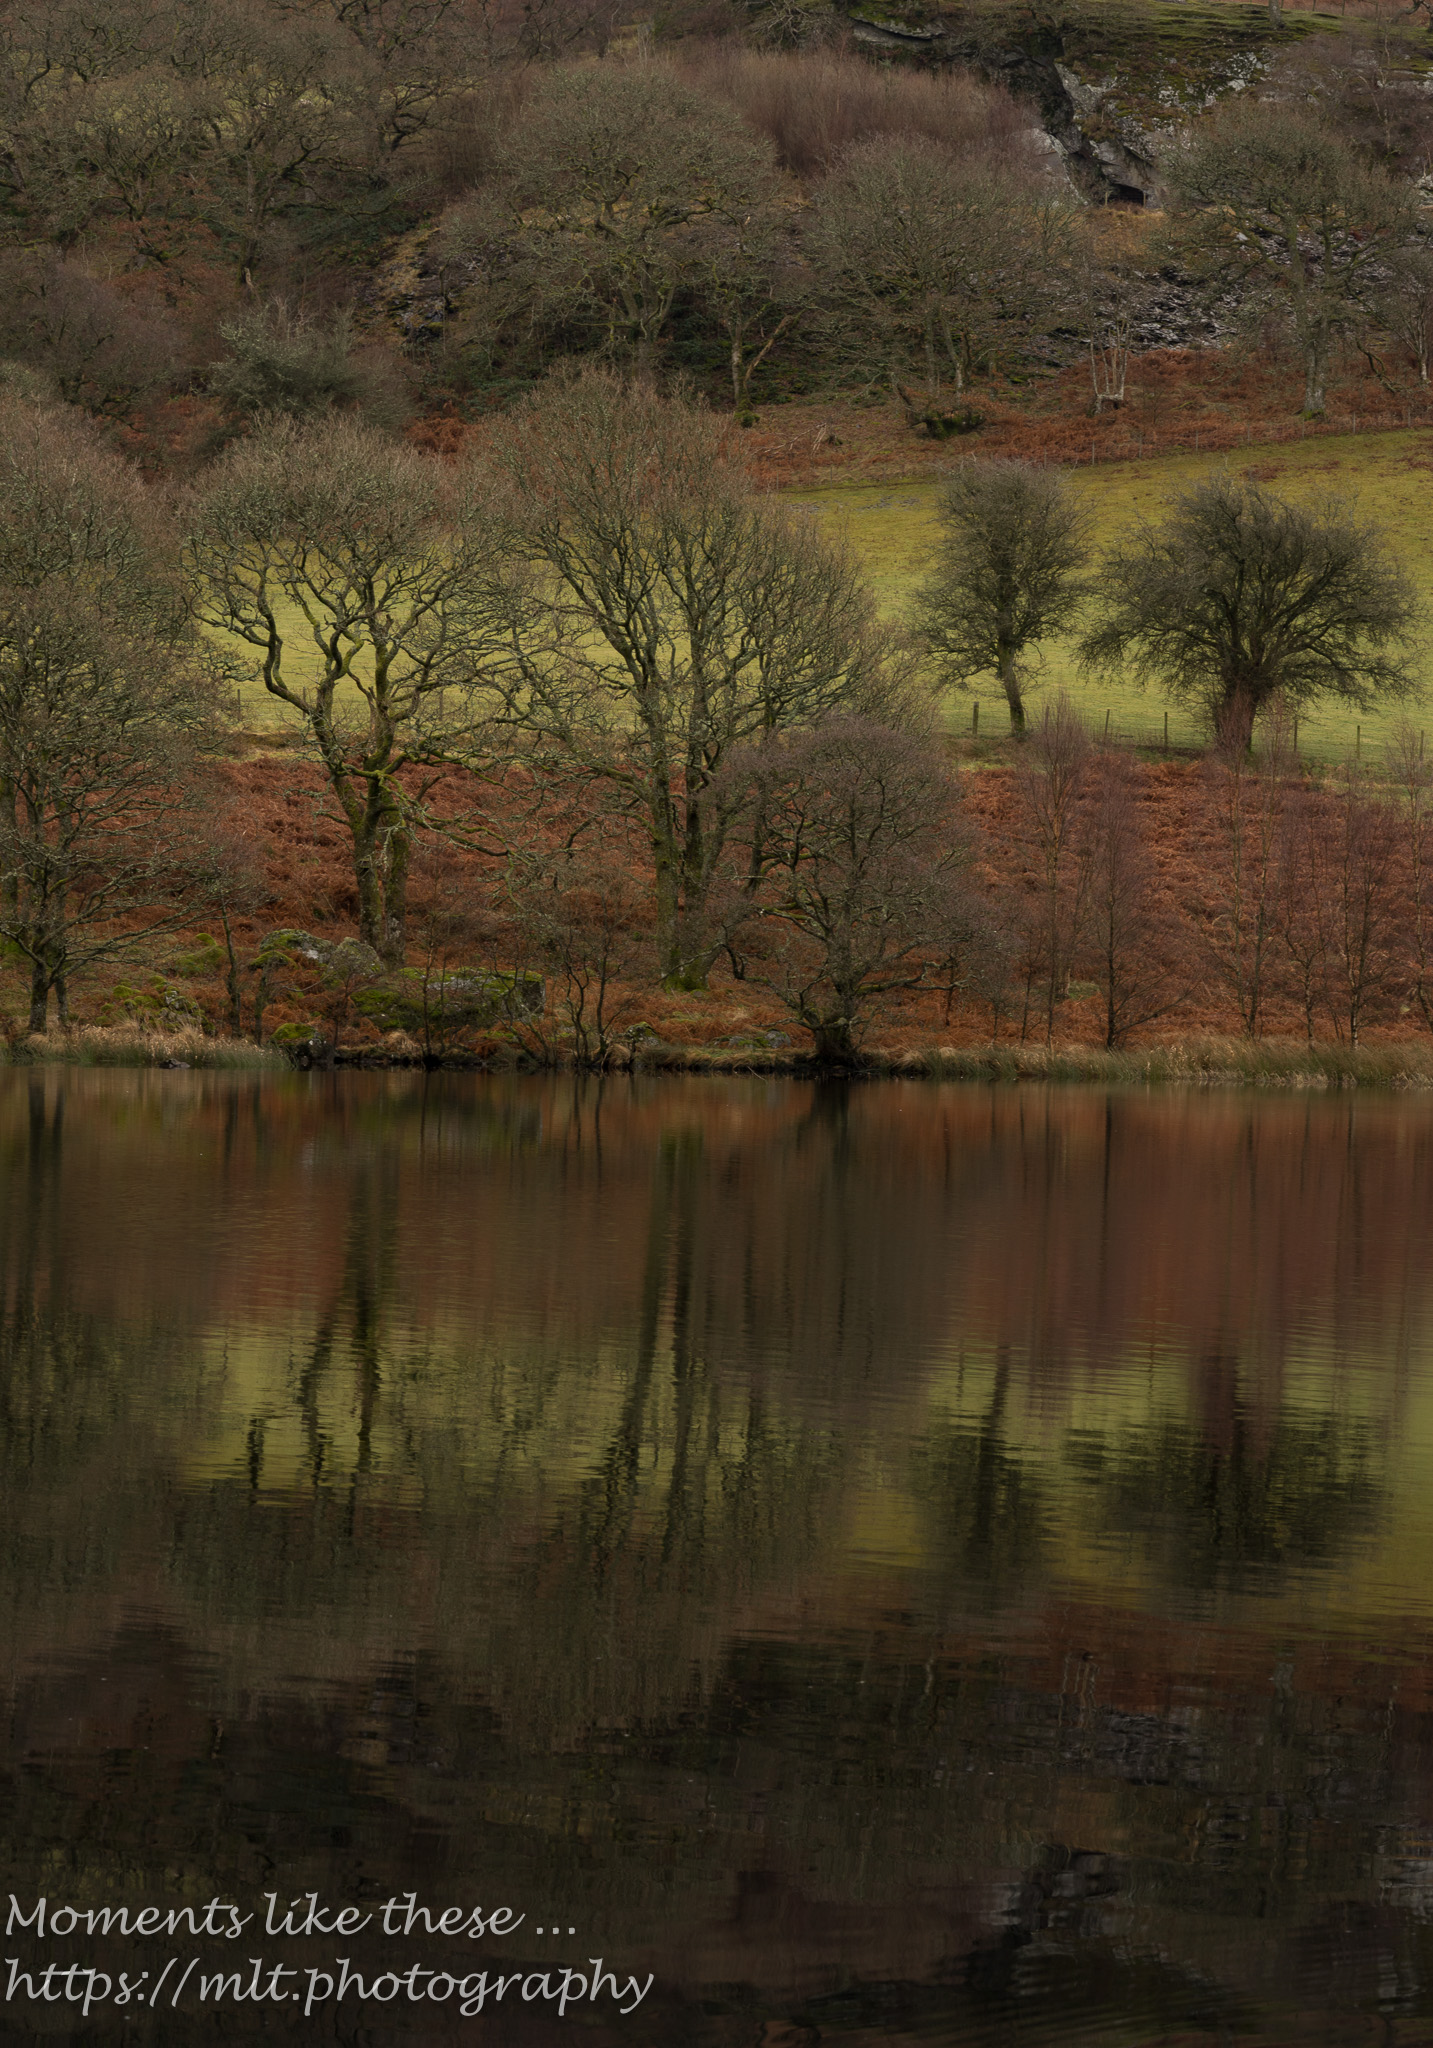 Dolymynach, Elan Valley